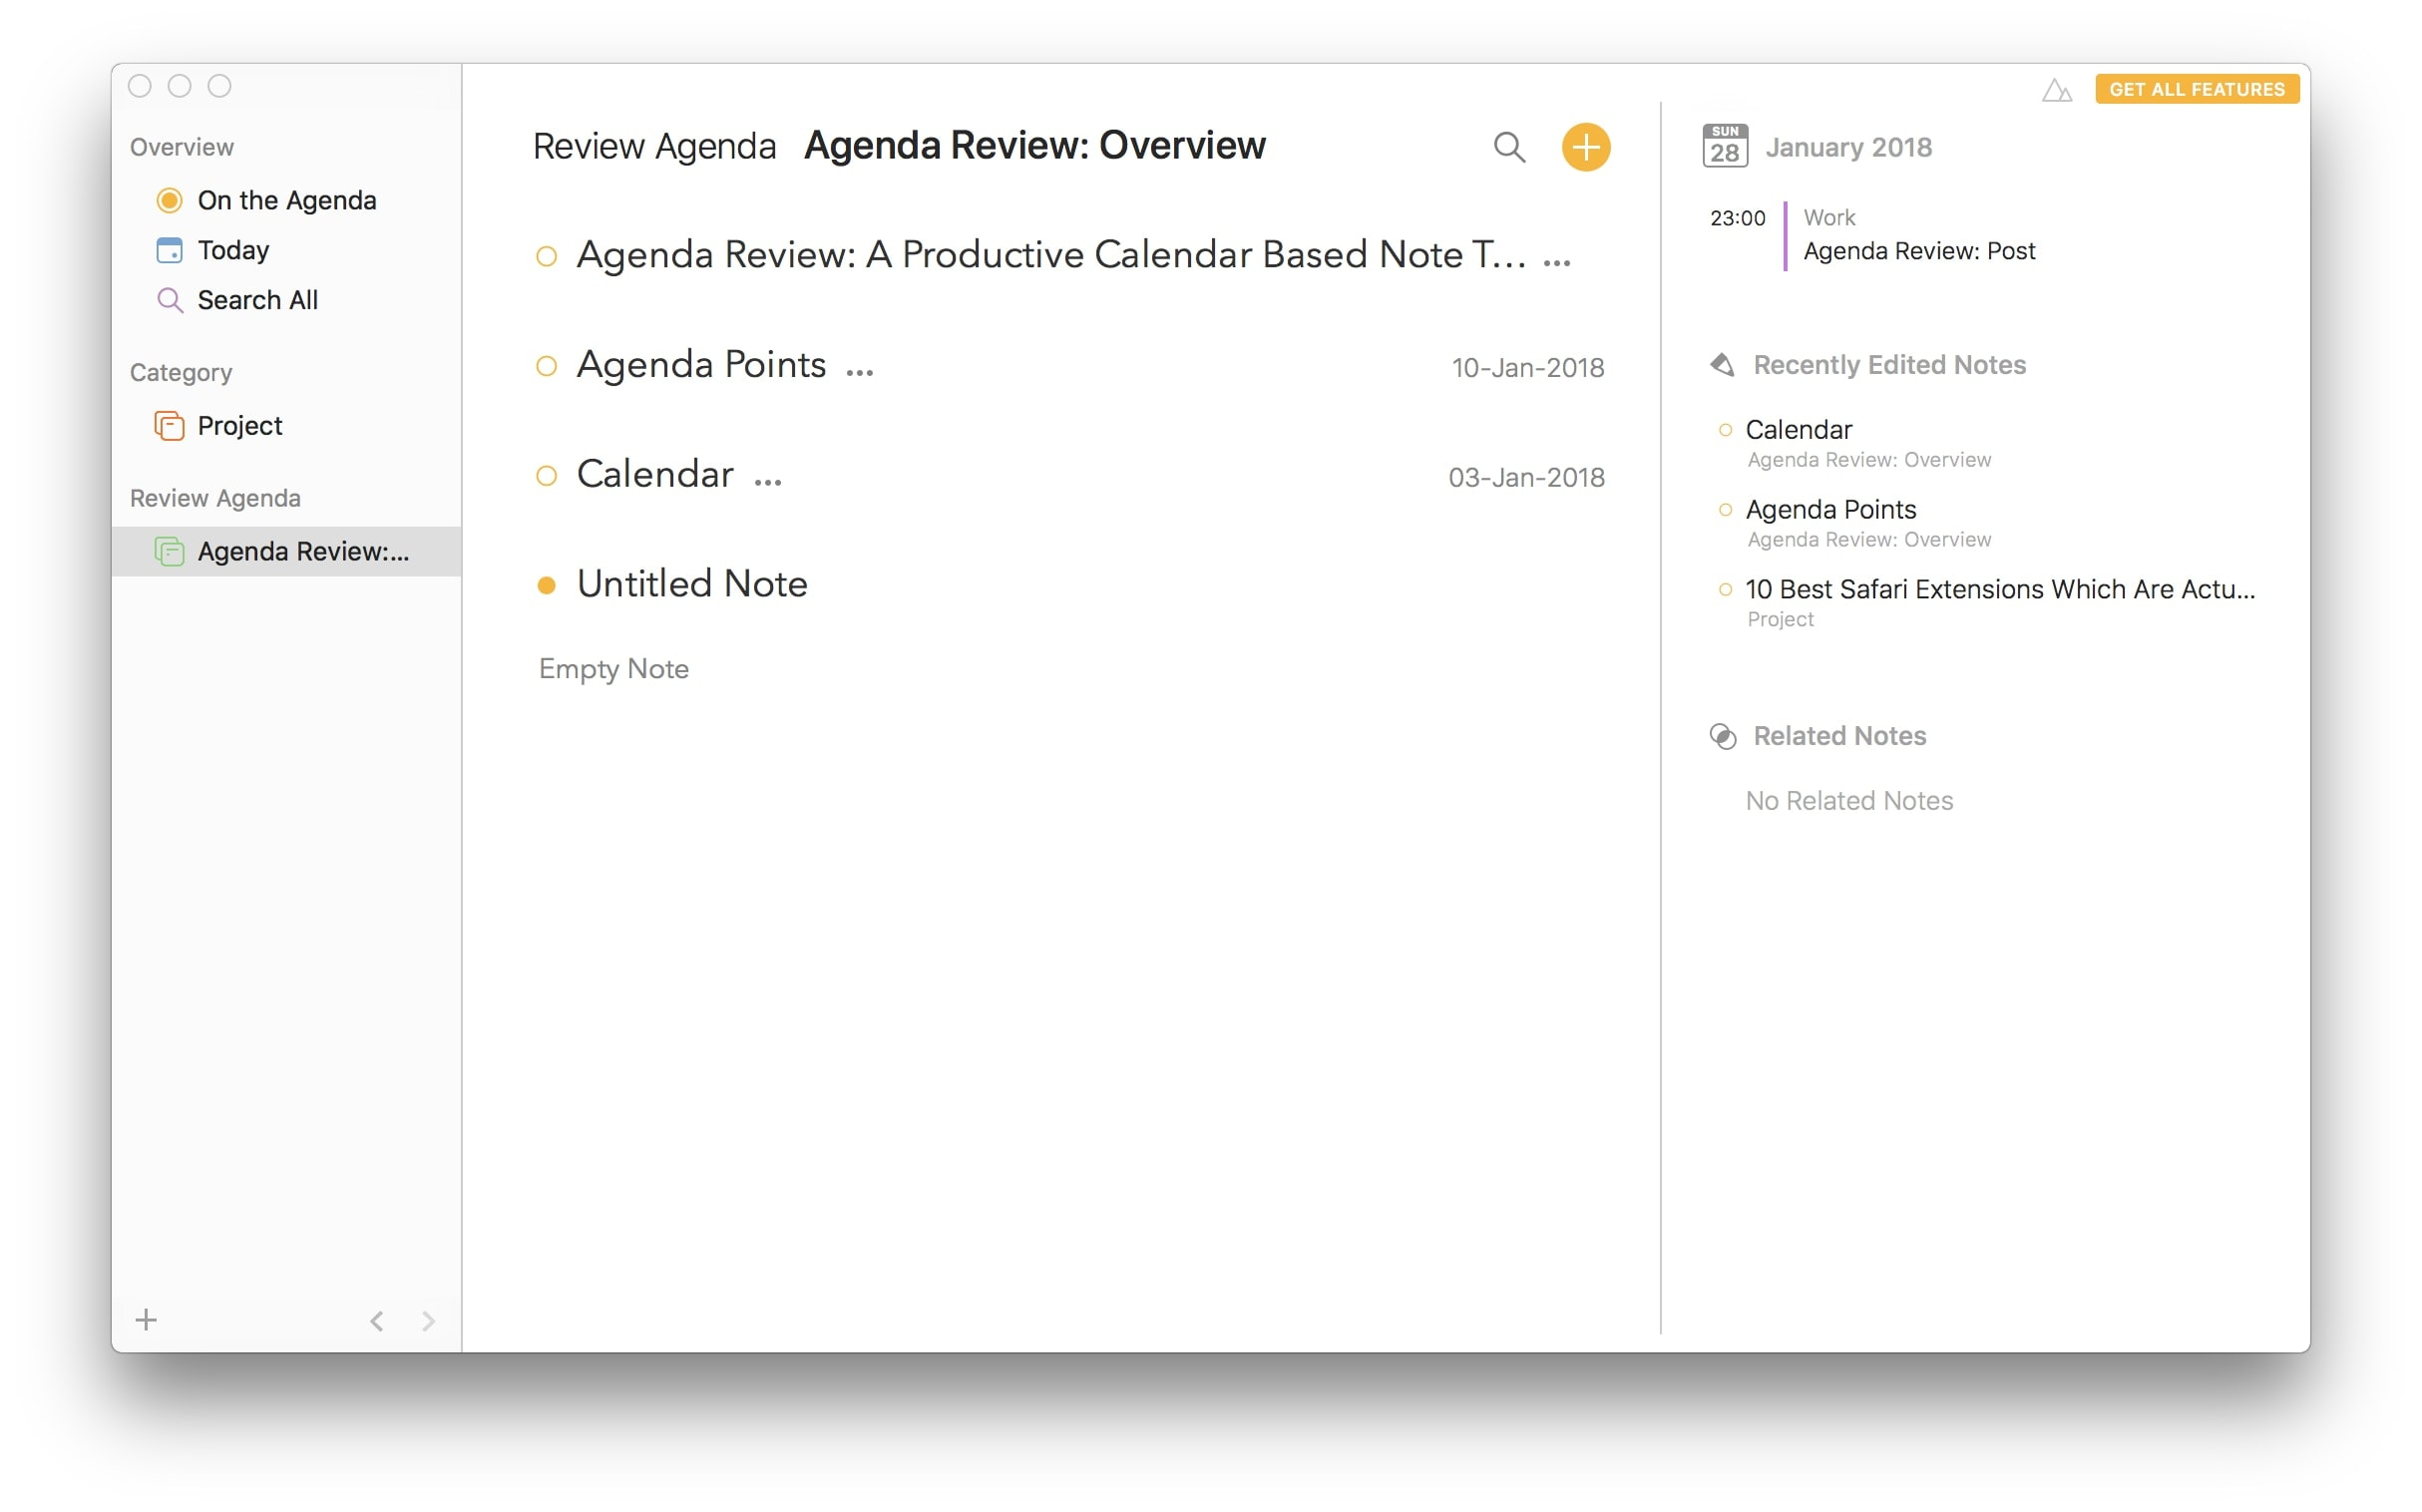 Agenda Review  Overview 1.jpg